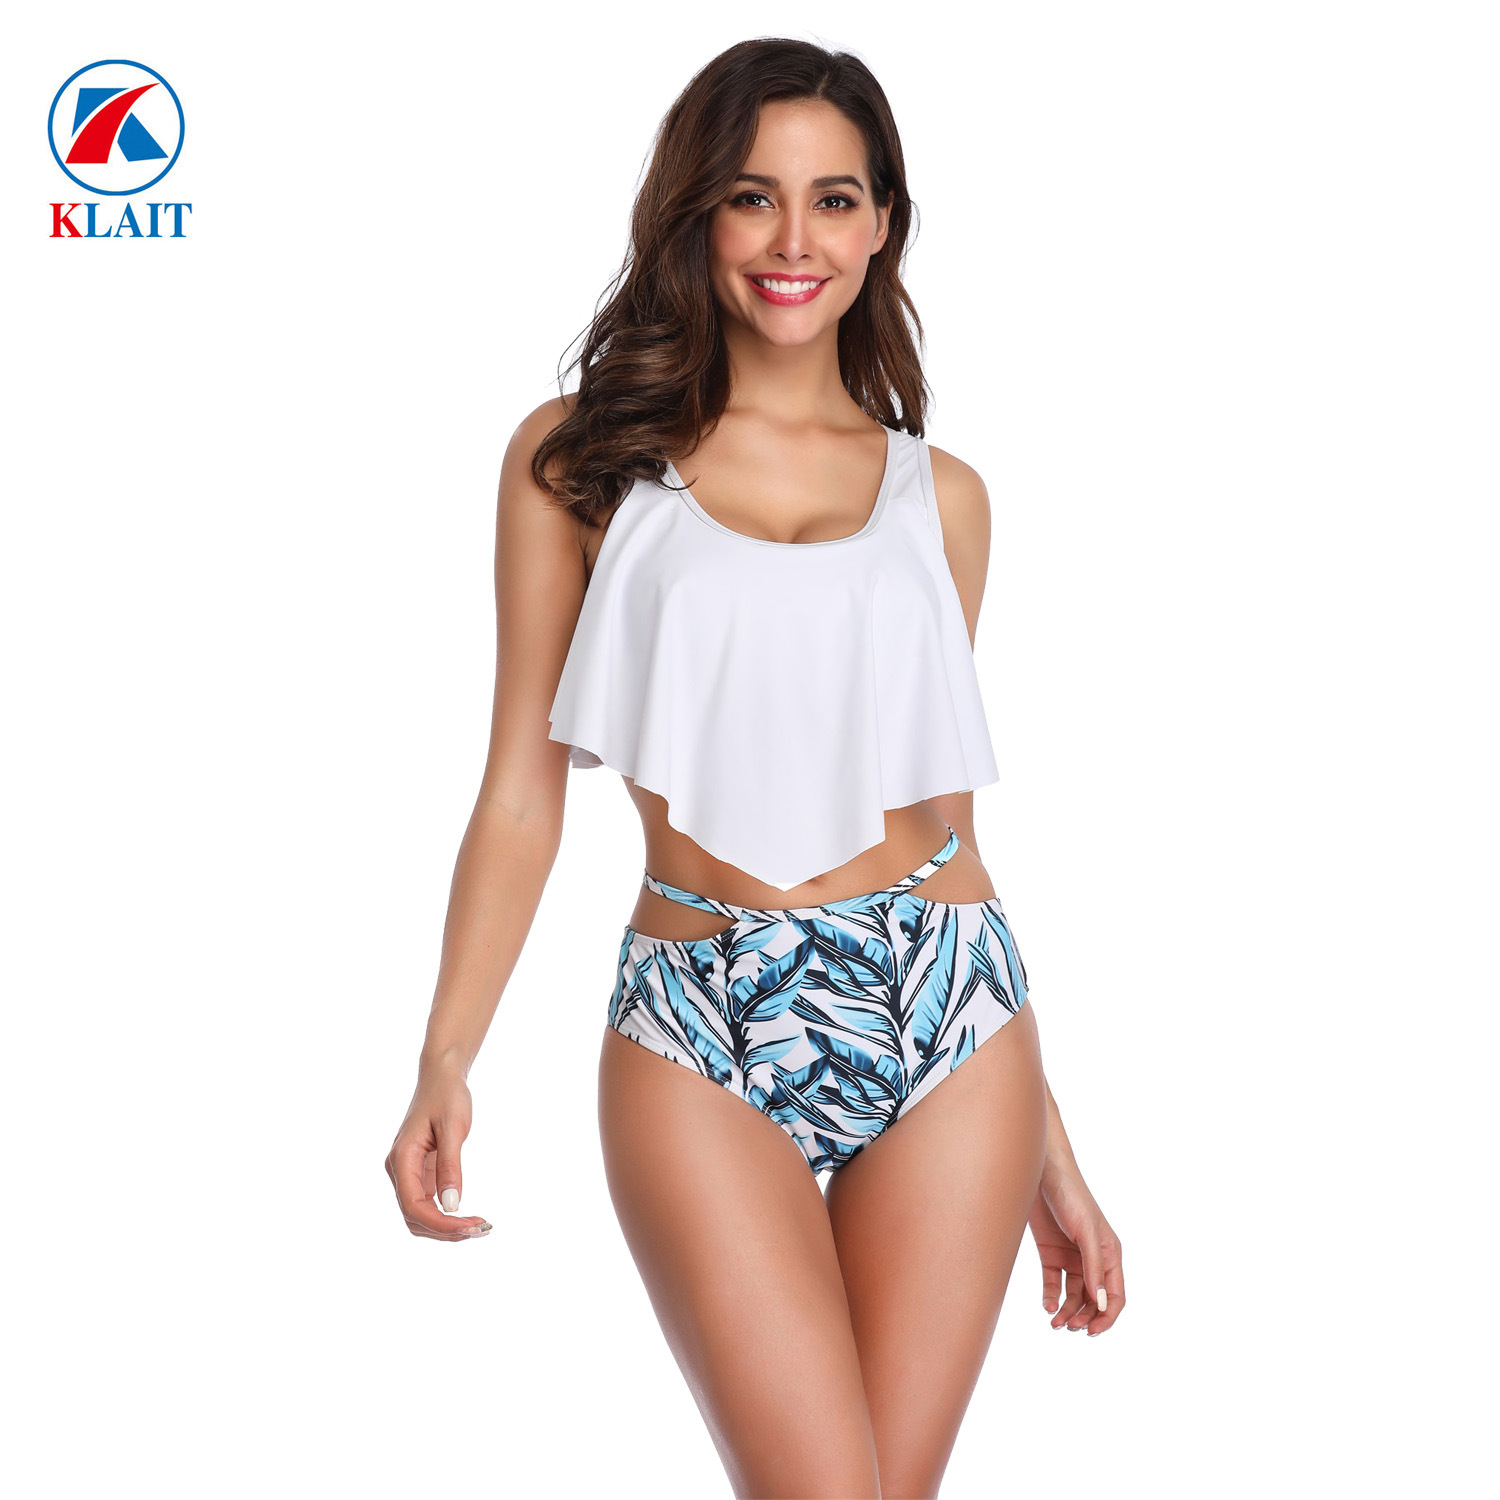 4663a4ab3d0d4 China Women Swimming Suit, Women Swimming Suit Manufacturers, Suppliers,  Price | Made-in-China.com